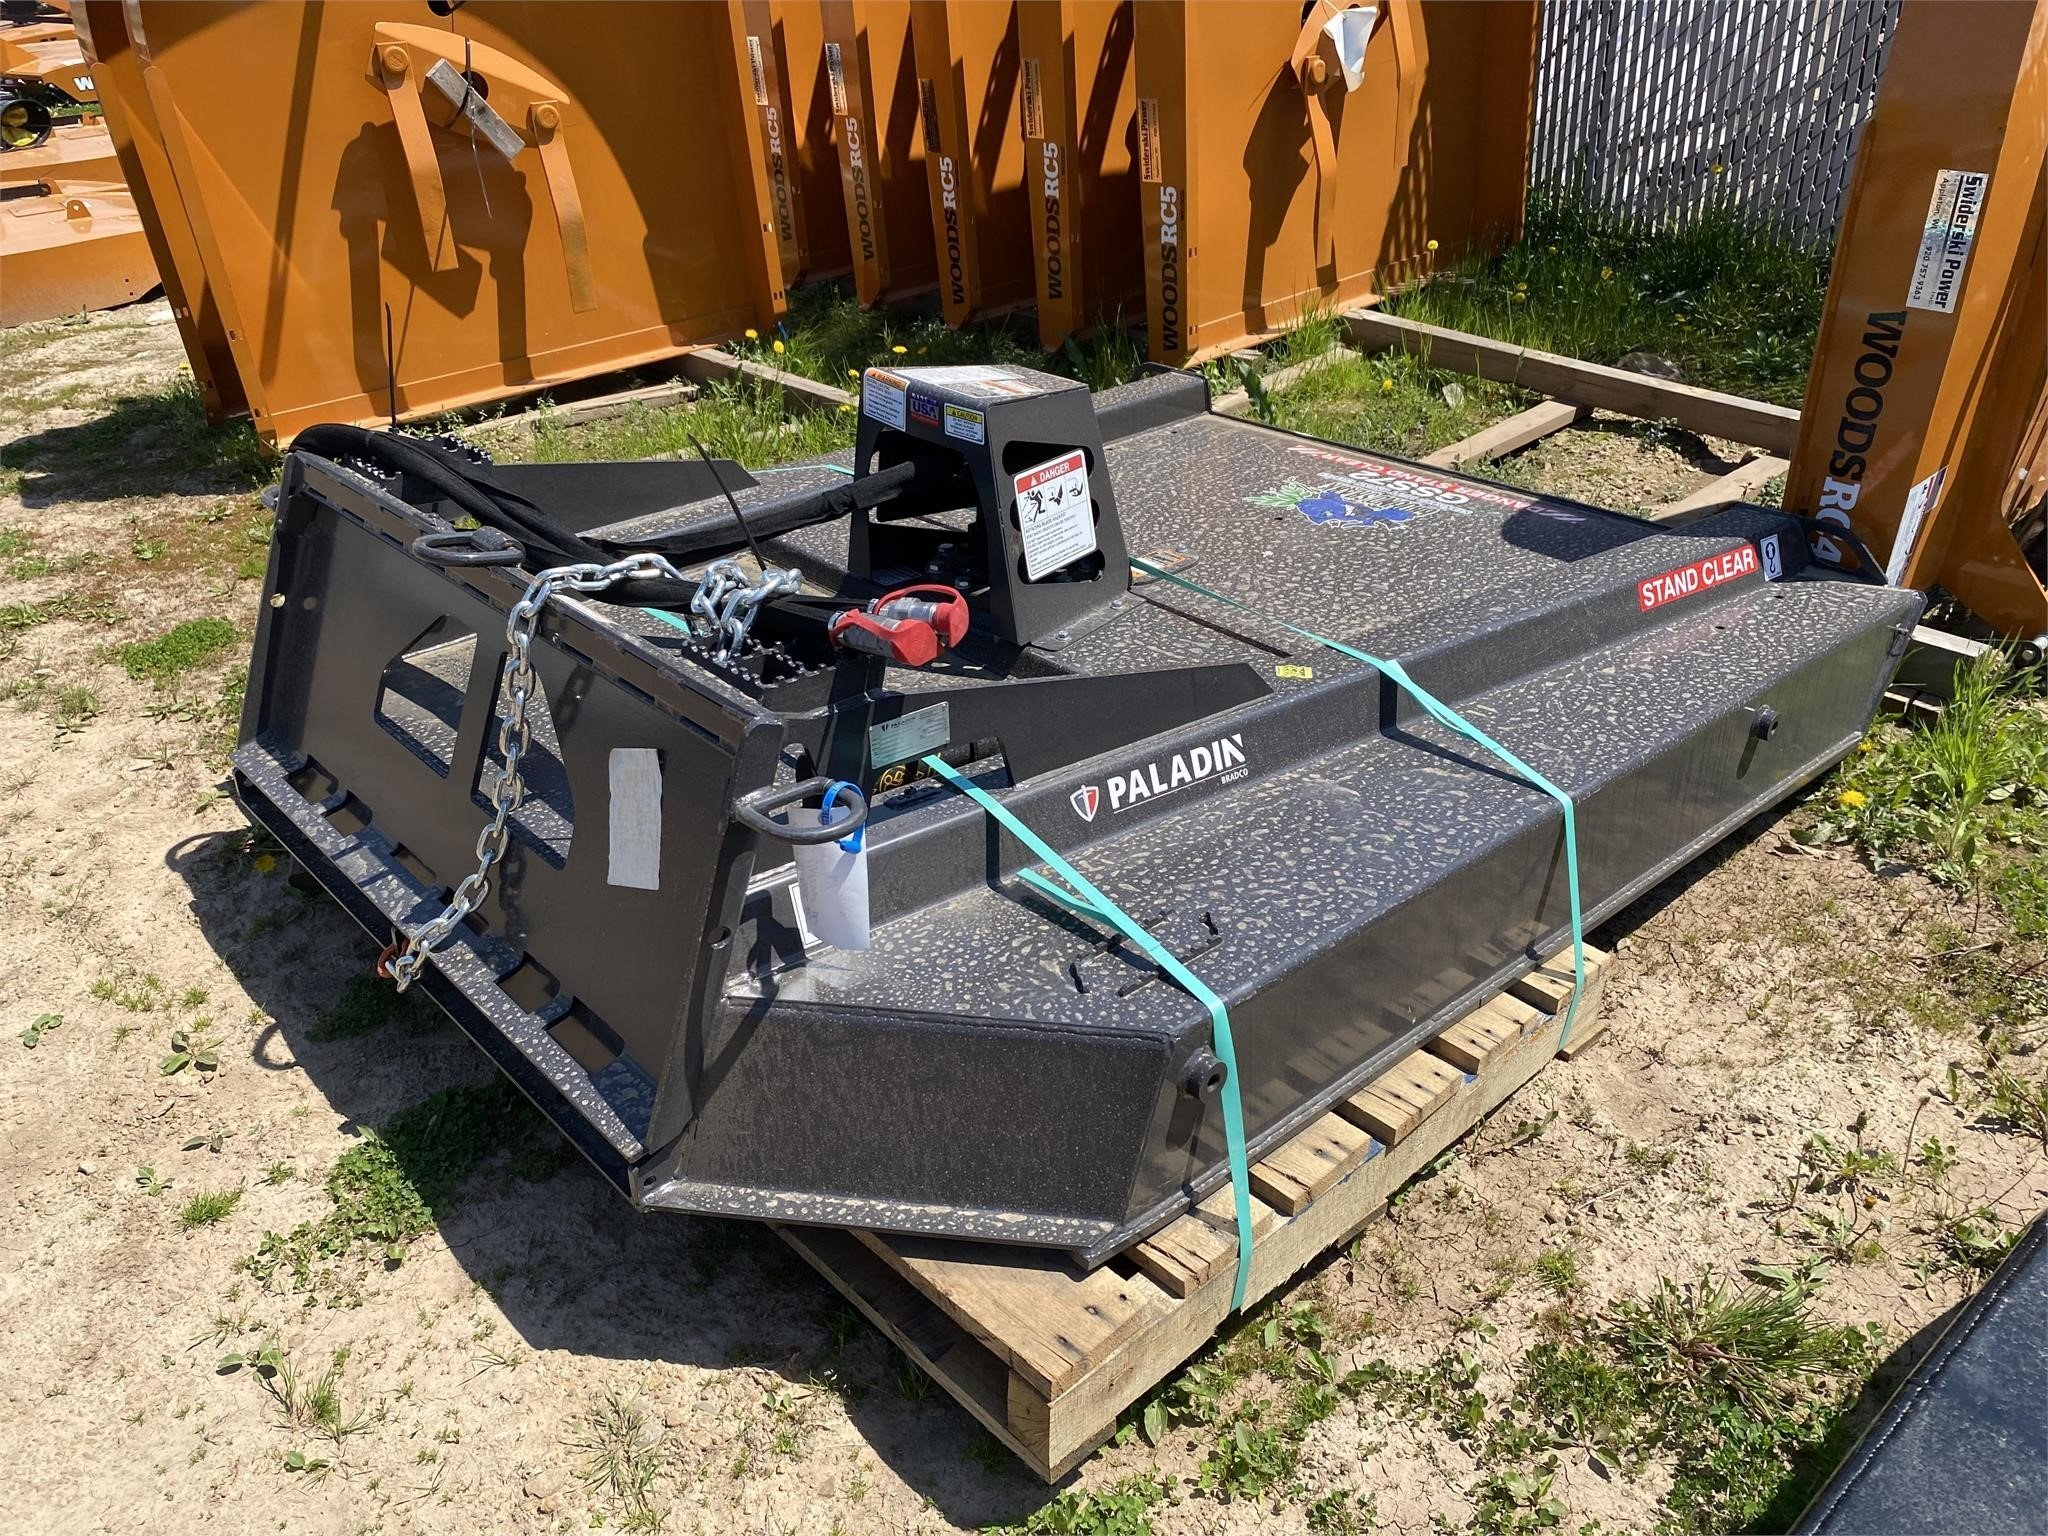 2021 Bradco GSS72 Rotary Cutter